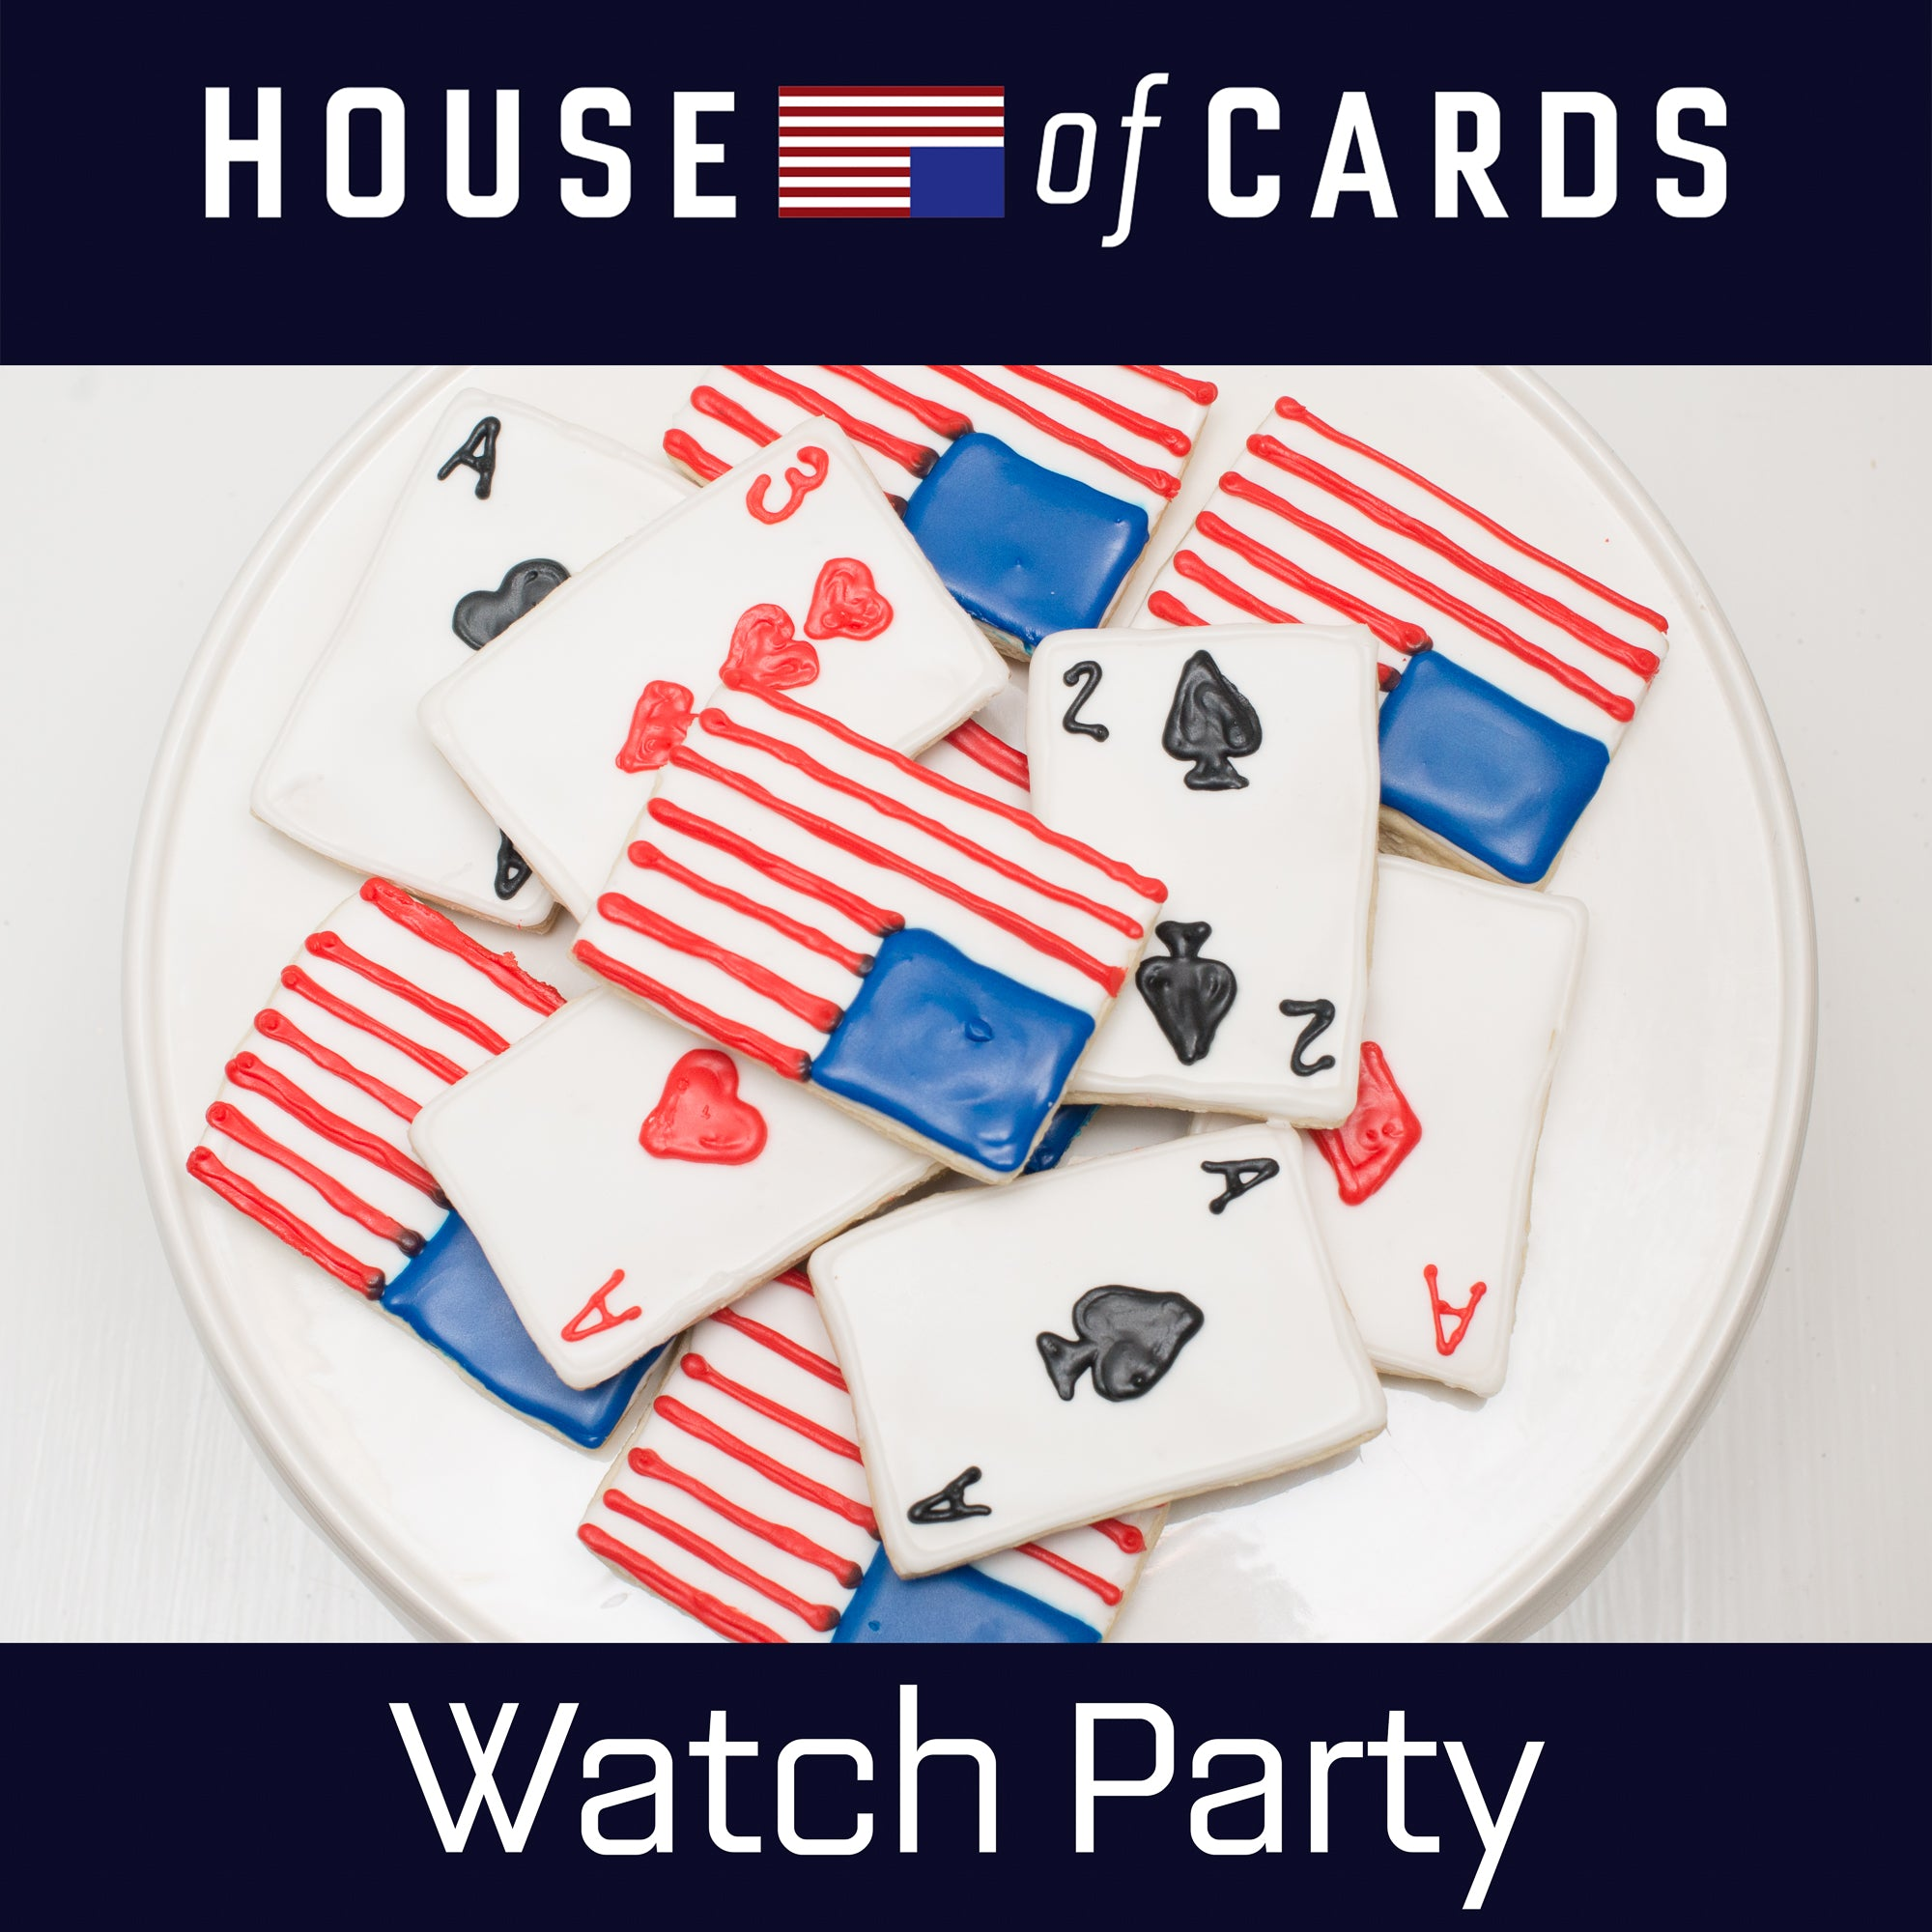 House of Cards Watch Party-1